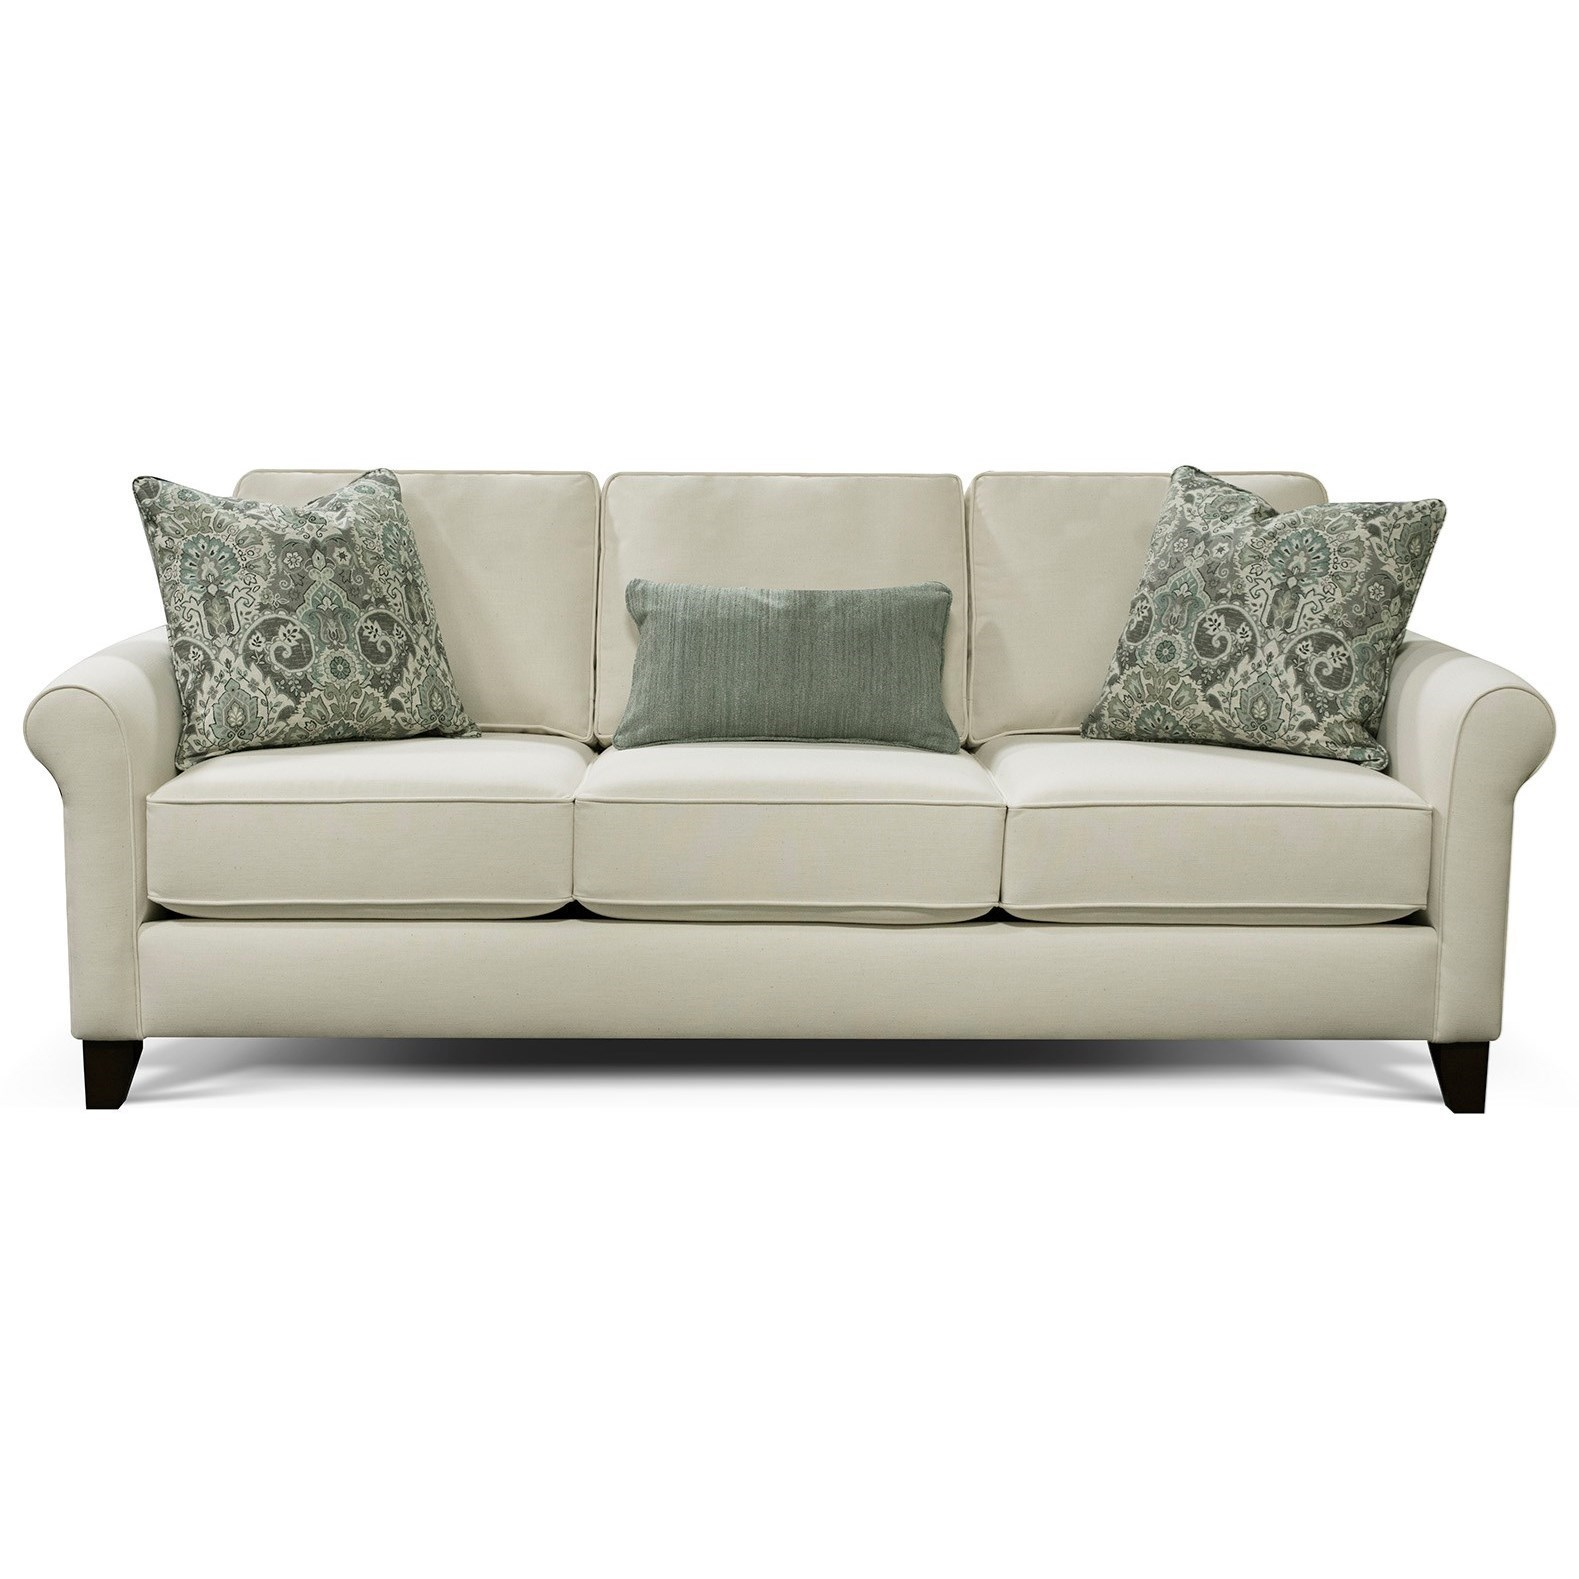 England Spencer Transitional Sofa With Rolled Arms Reeds